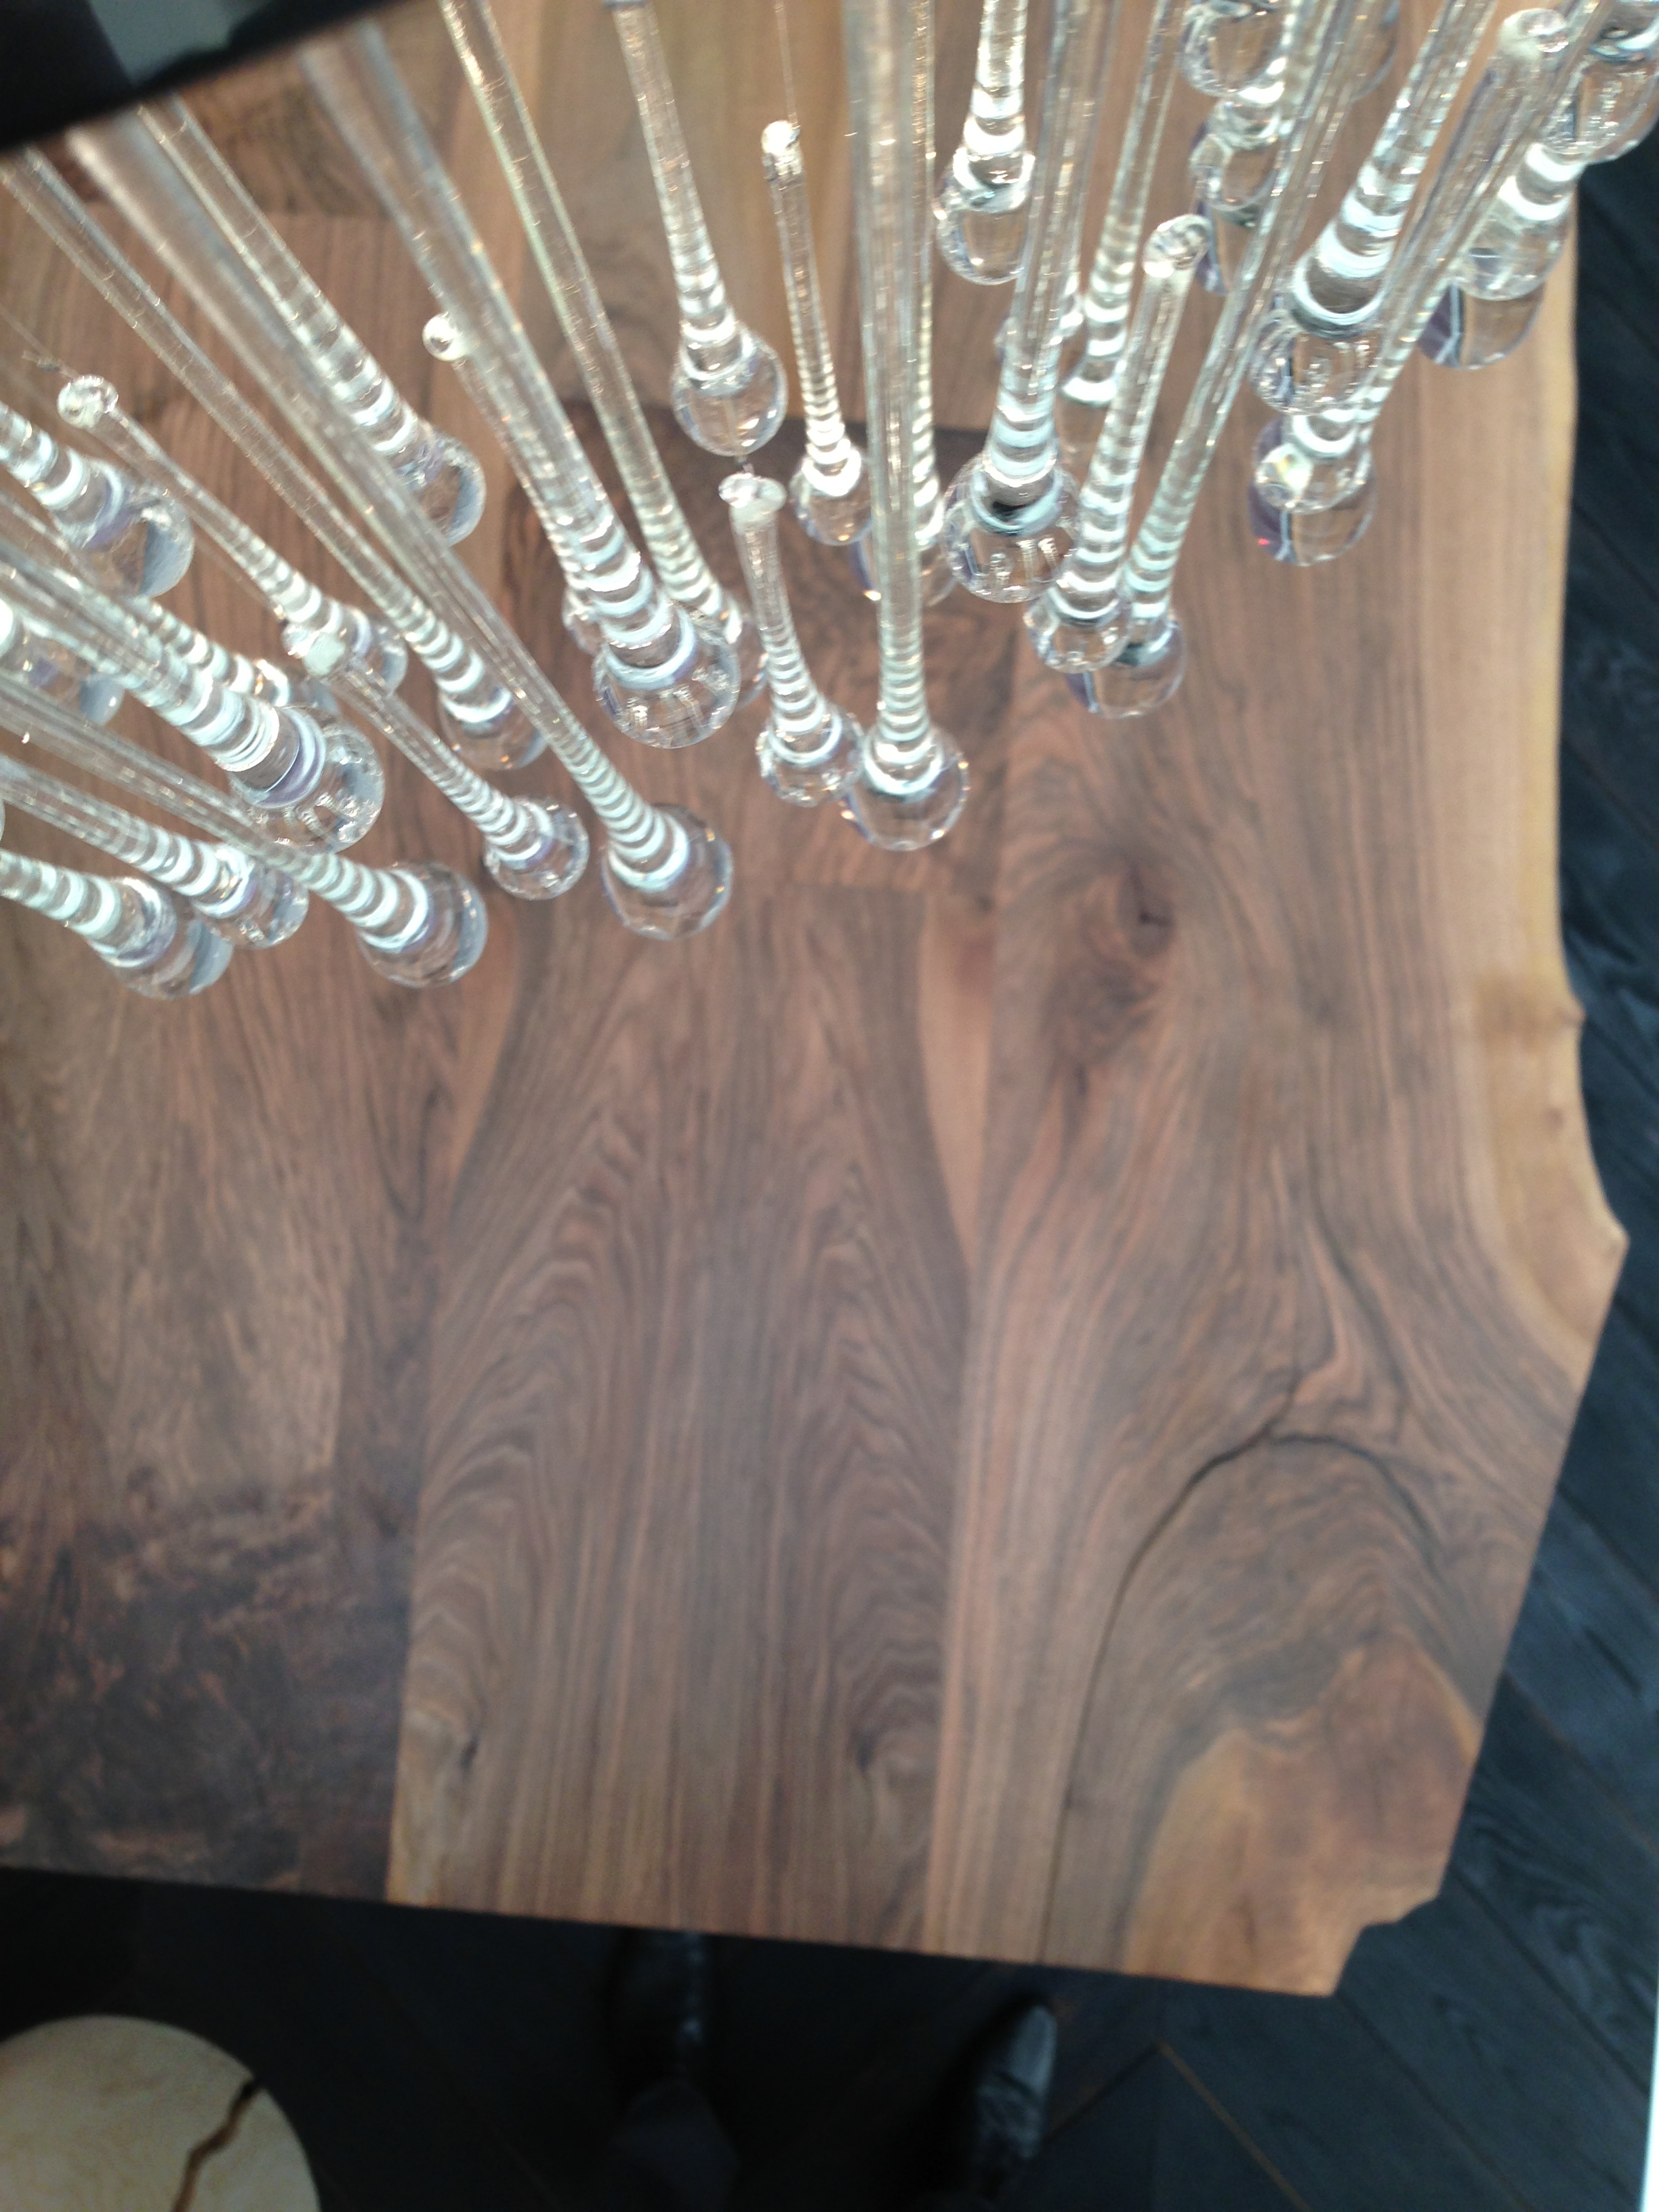 European walnut table Decorex tradeshow